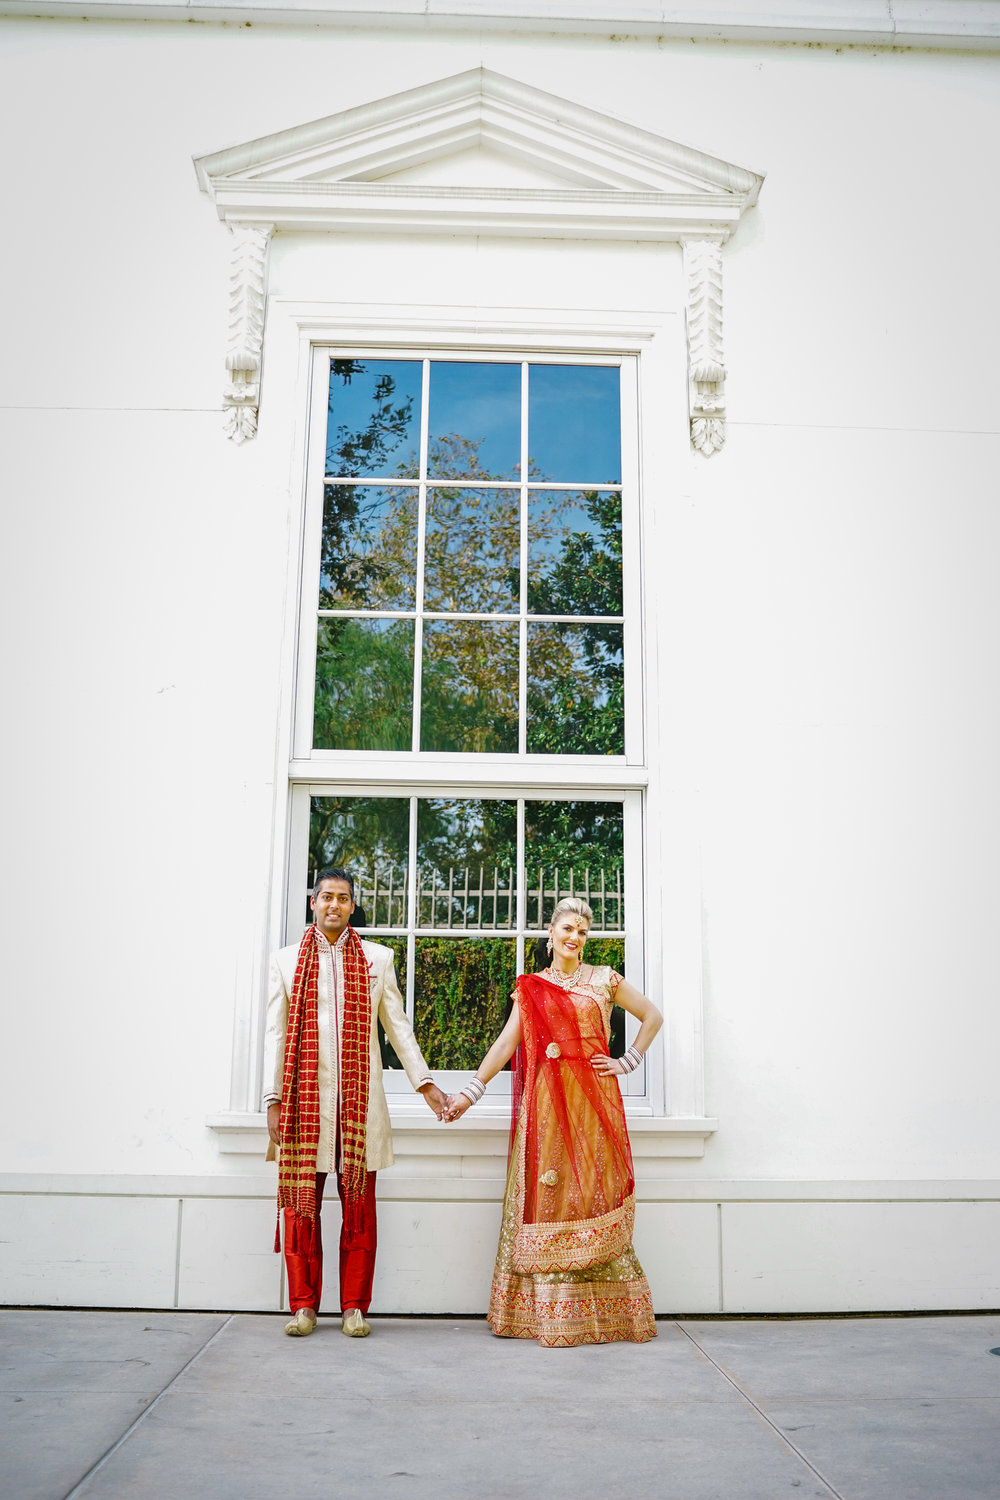 JKP_Indian_Weddings_0071.JPG